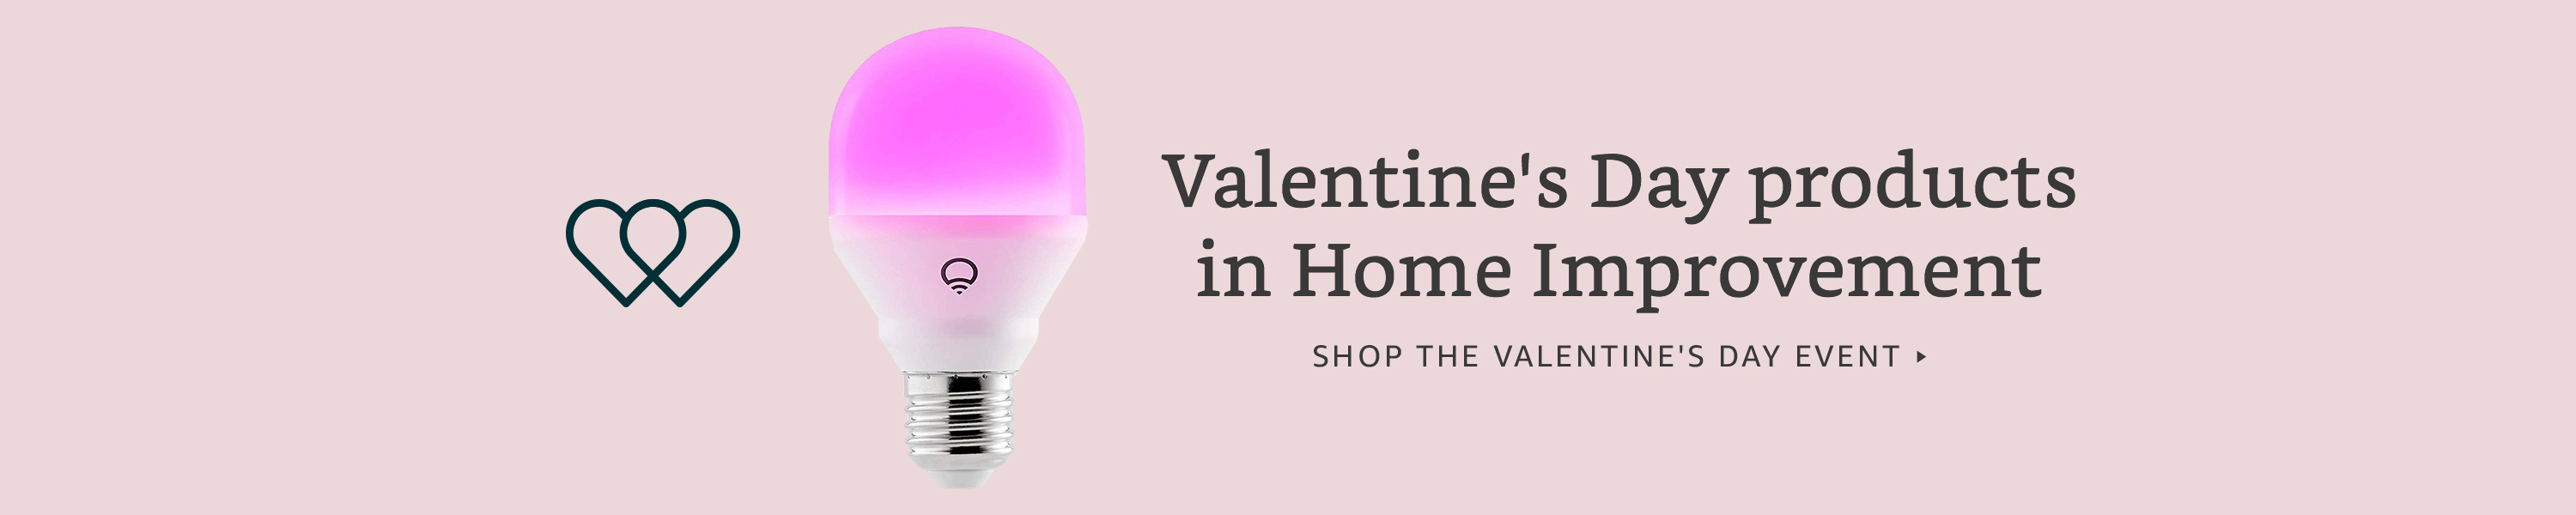 Valentine's Day products in Home Improvement. Shop the Valentine's Day Event.